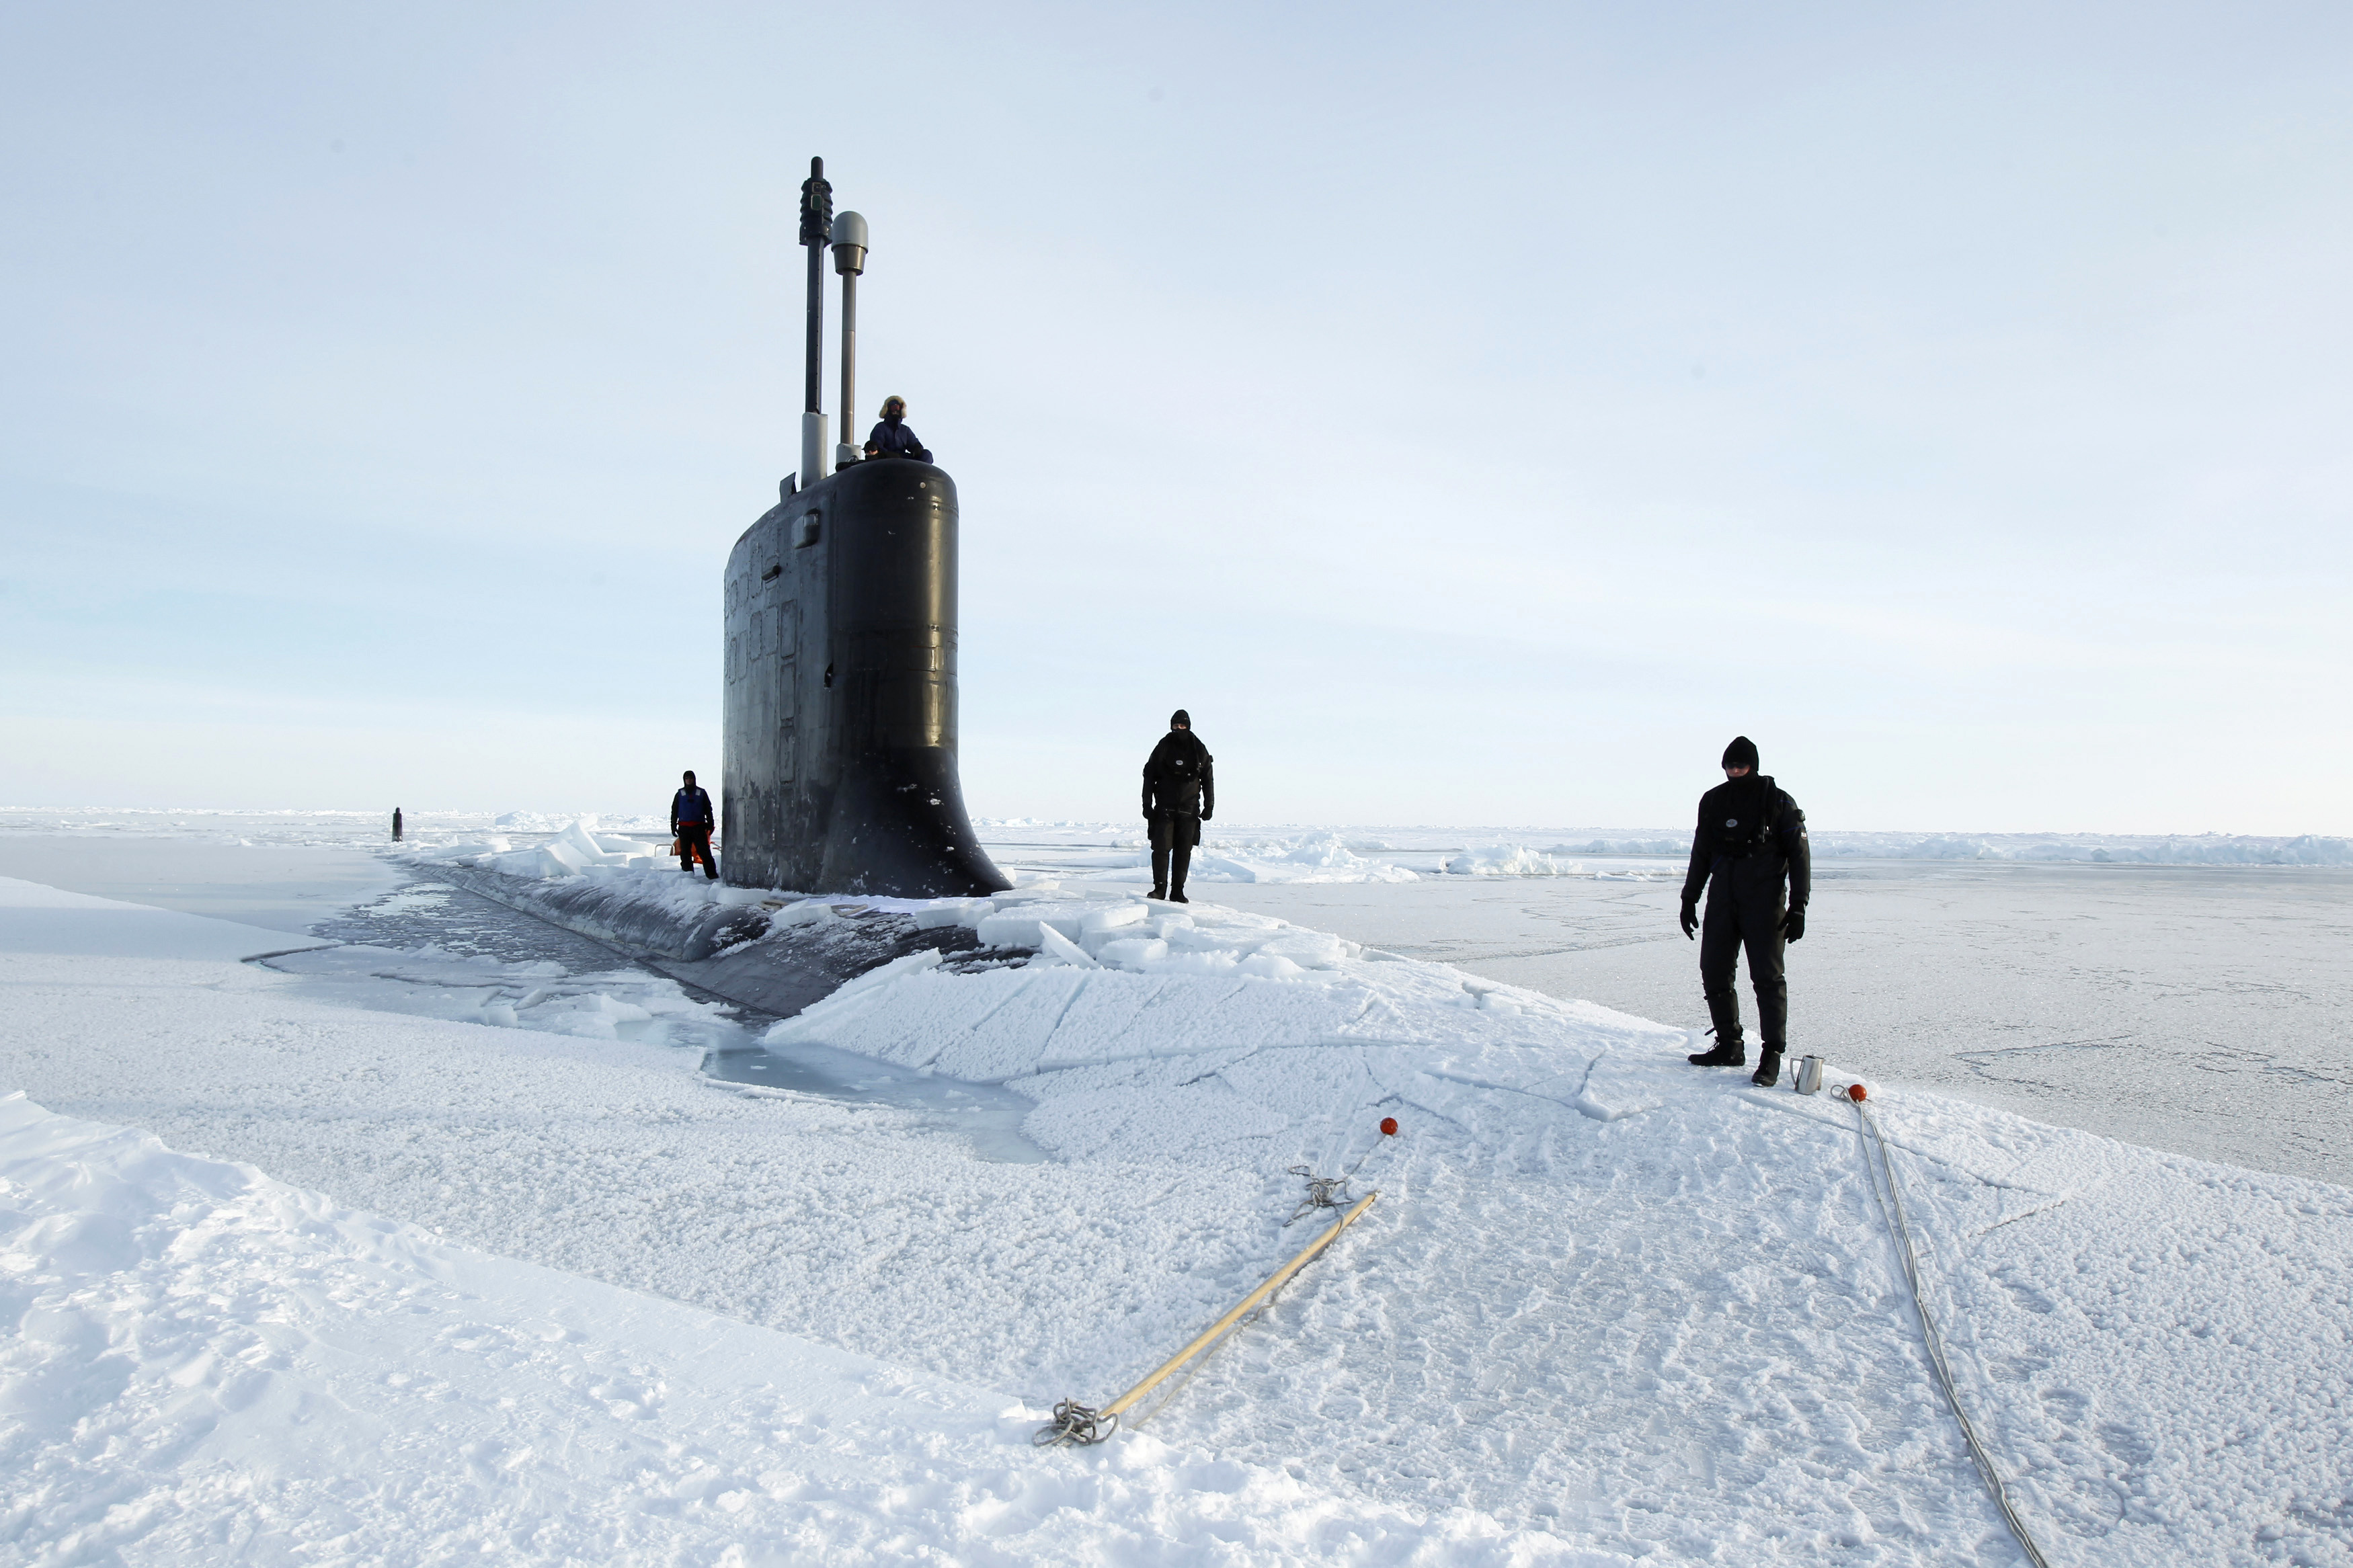 U.S. Navy safety swimmers stand on the deck of the Virginia class submarine USS New Hampshire after it surfaced through thin ice during exercises underneath ice in the Arctic Ocean north of Prudhoe Bay, Alaska March 19, 2011.  REUTERS/Lucas Jackson (UNITED STATES - Tags: MILITARY)   FOR BEST QUALITY AVAILABLE: ALSO SEE GM1E73U0AH201 - GM1E73M0IBL01